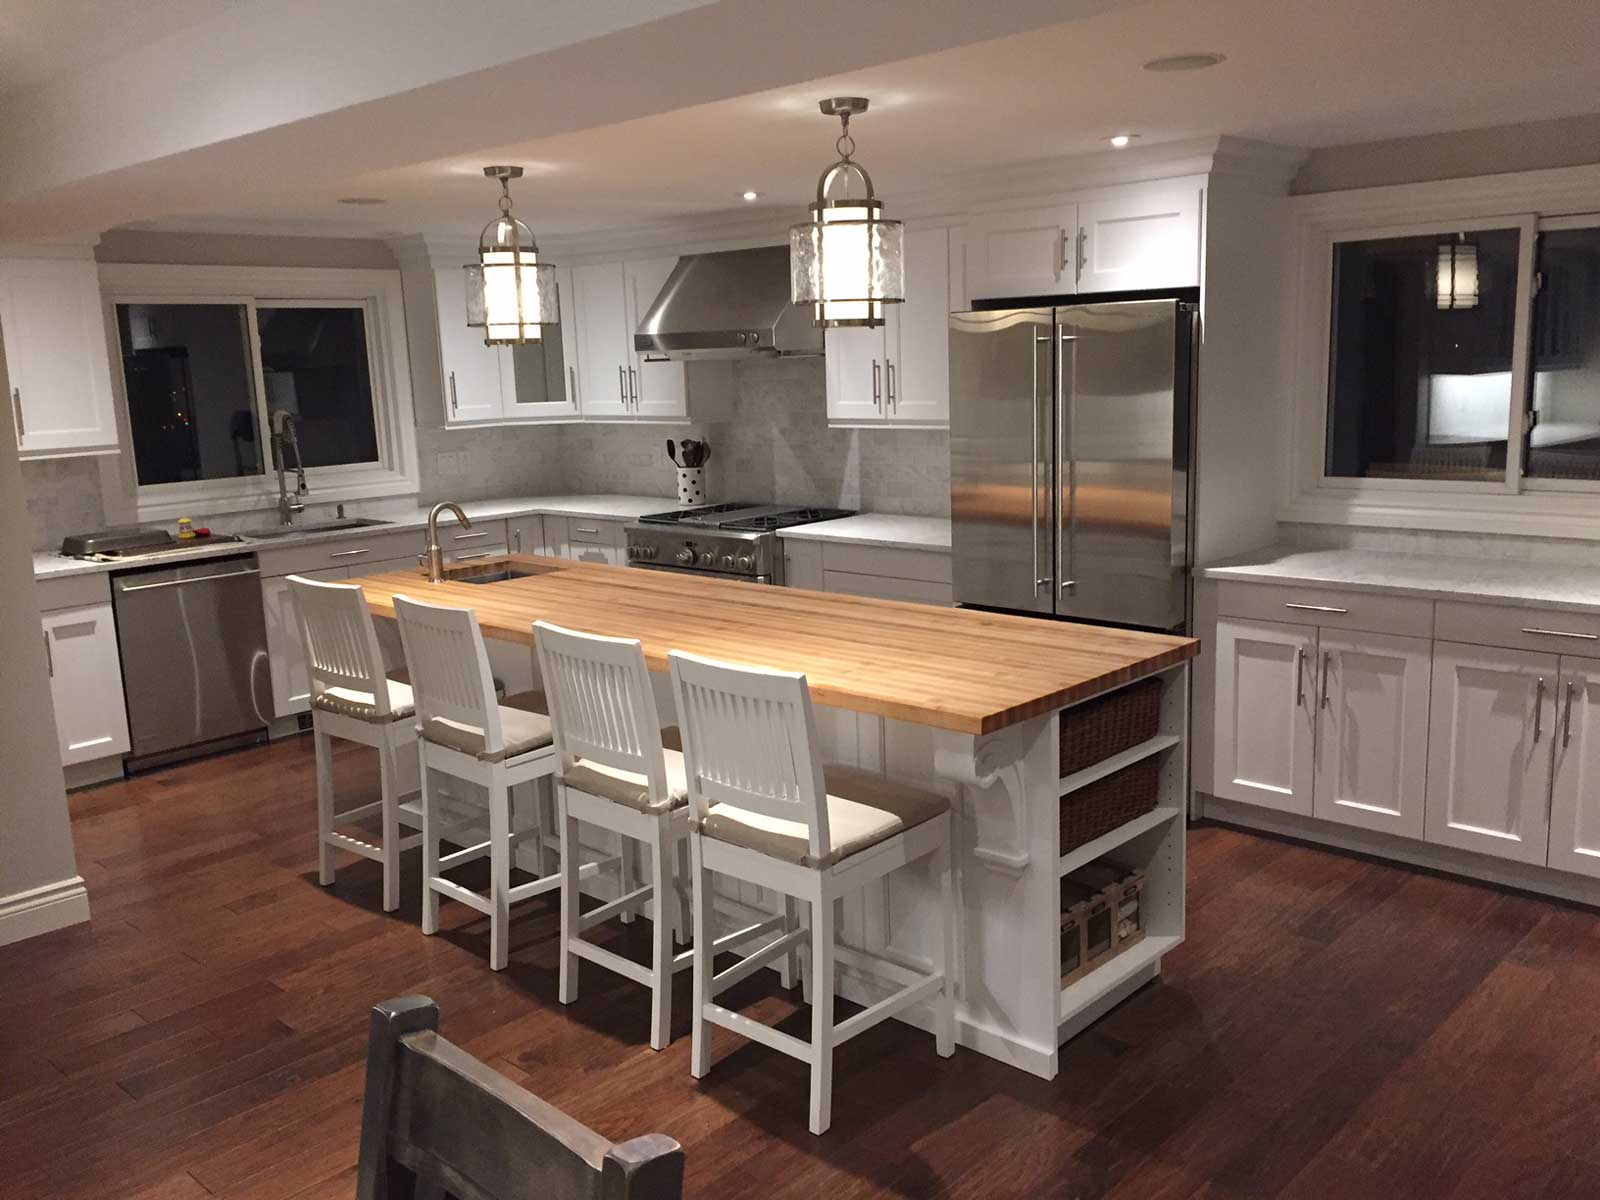 3D Kitchen Designs - Jermyn Lumber Ltd.